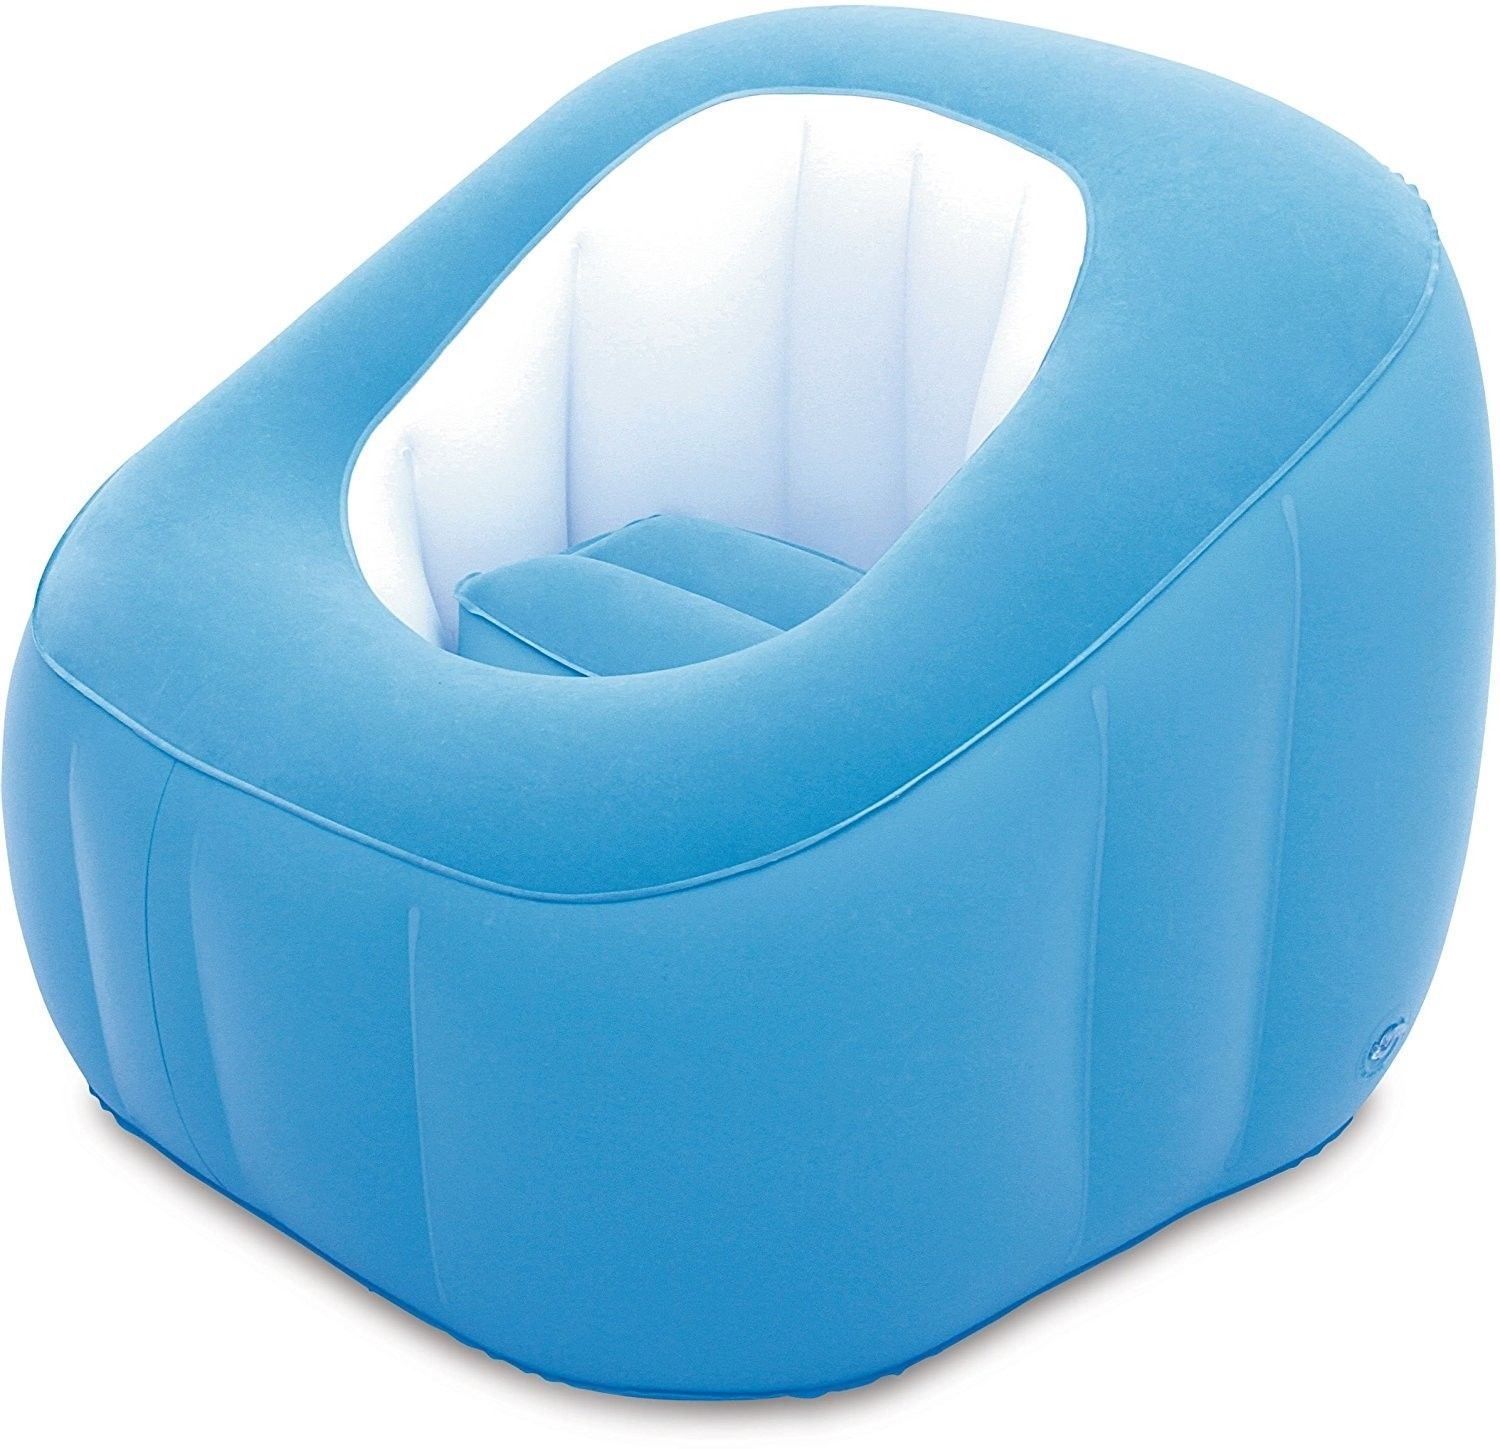 New Inflatable Chair